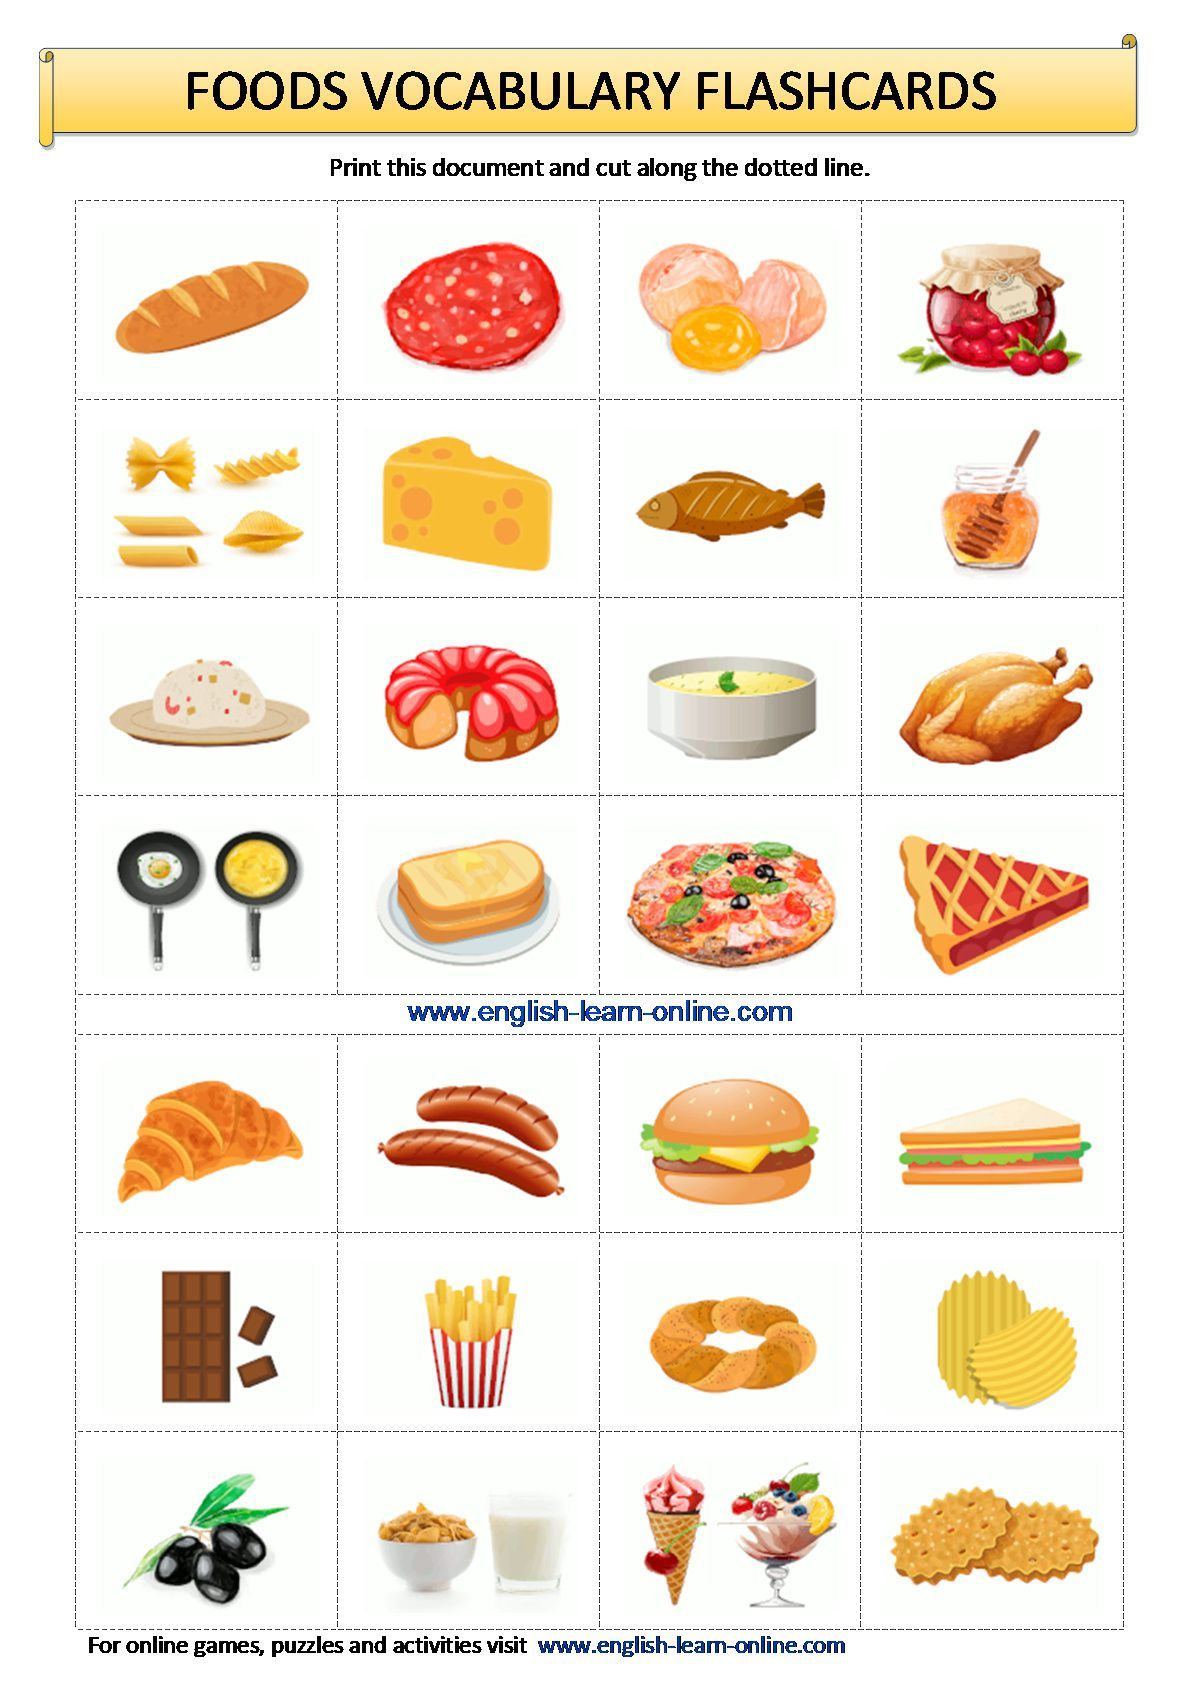 Foods Vocabulary Flashcards Worksheet In